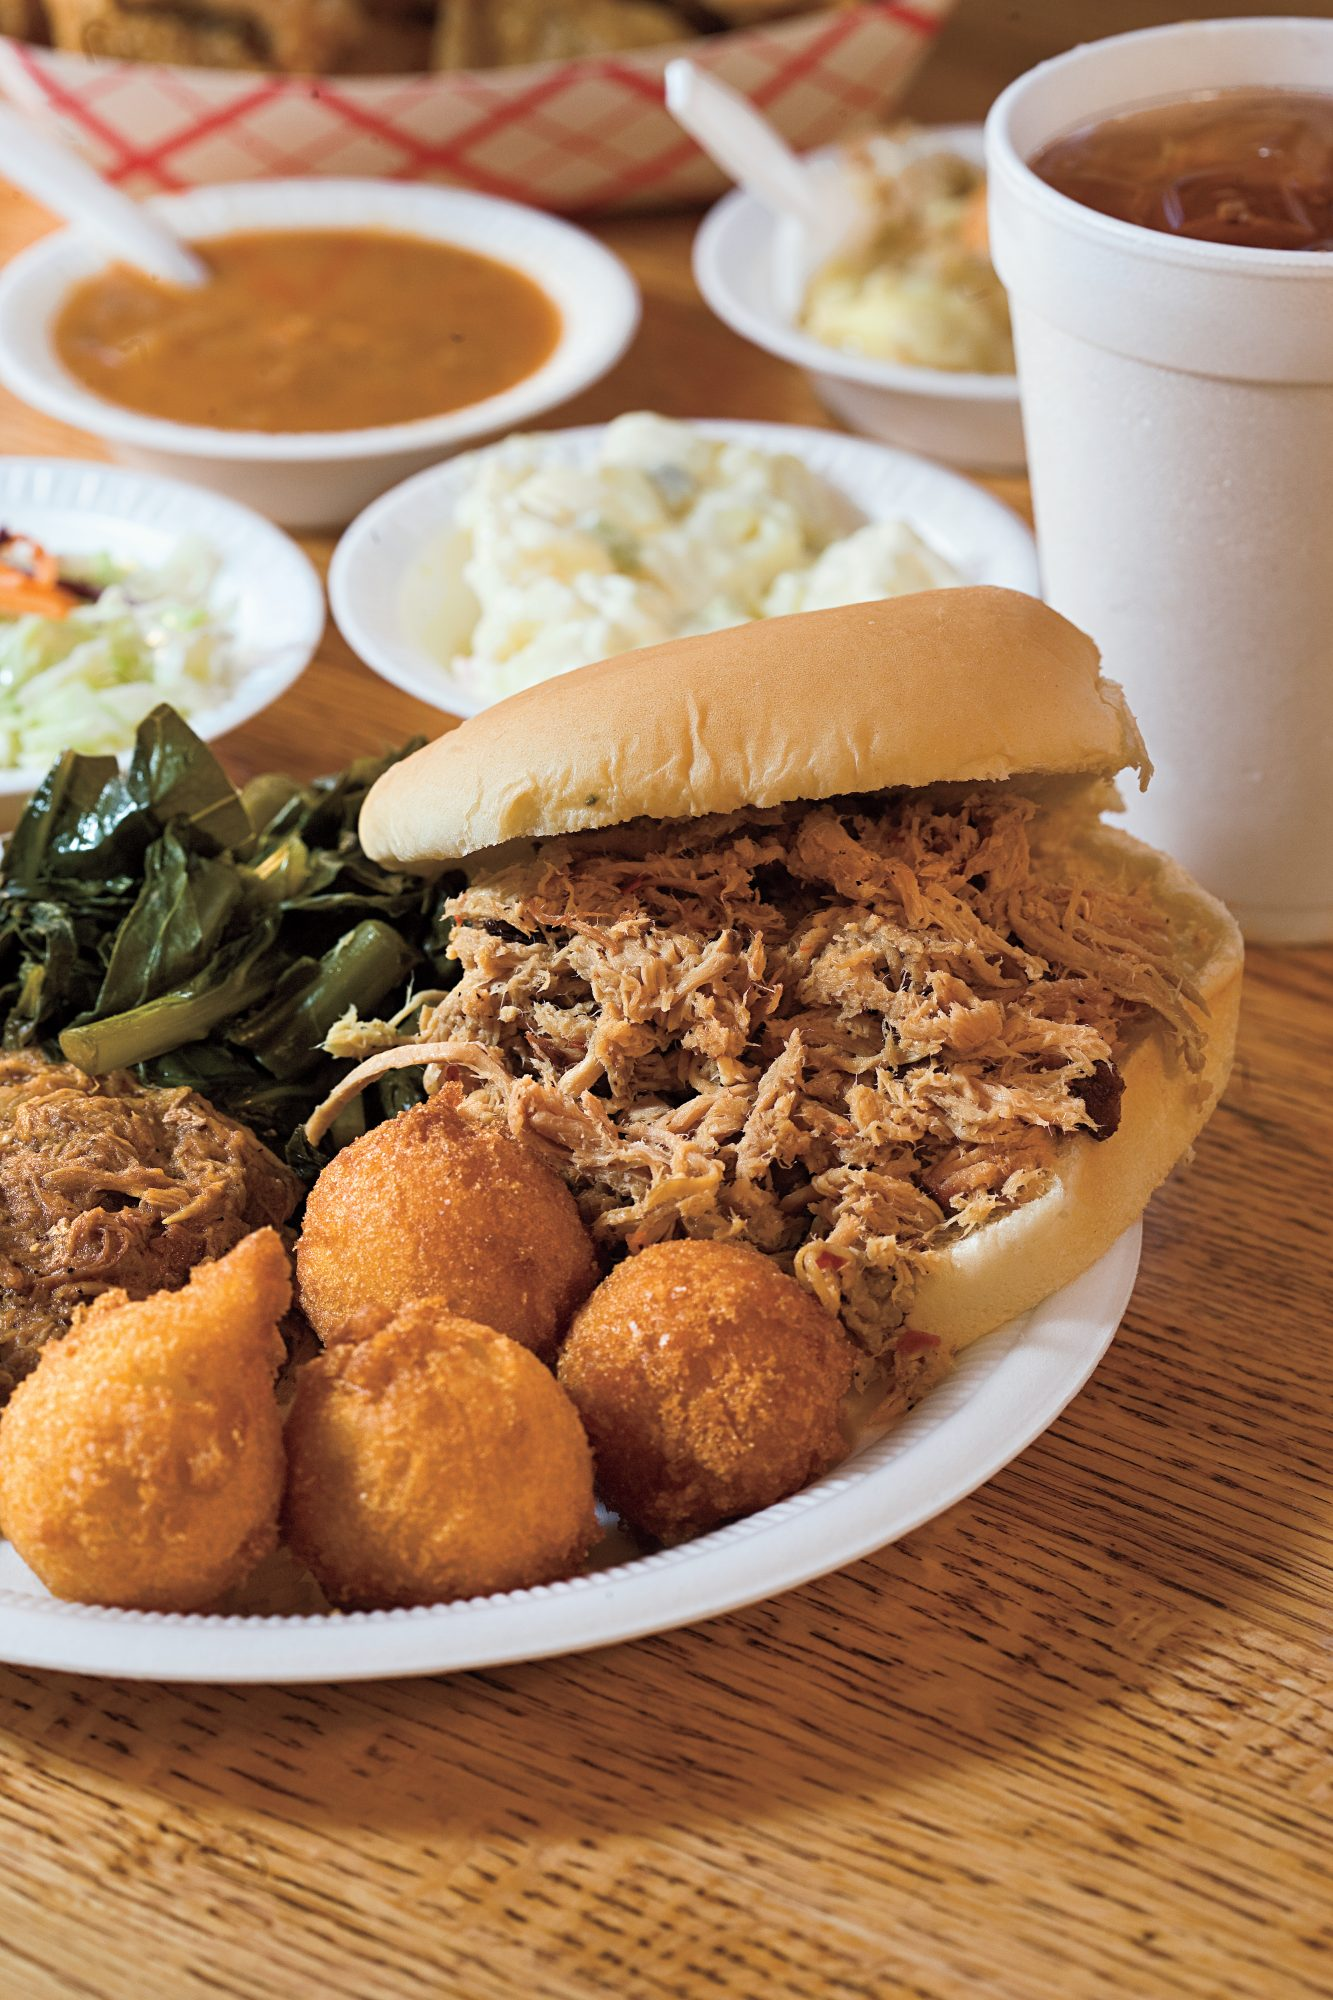 Little Pigs Barbecue, South Carolina